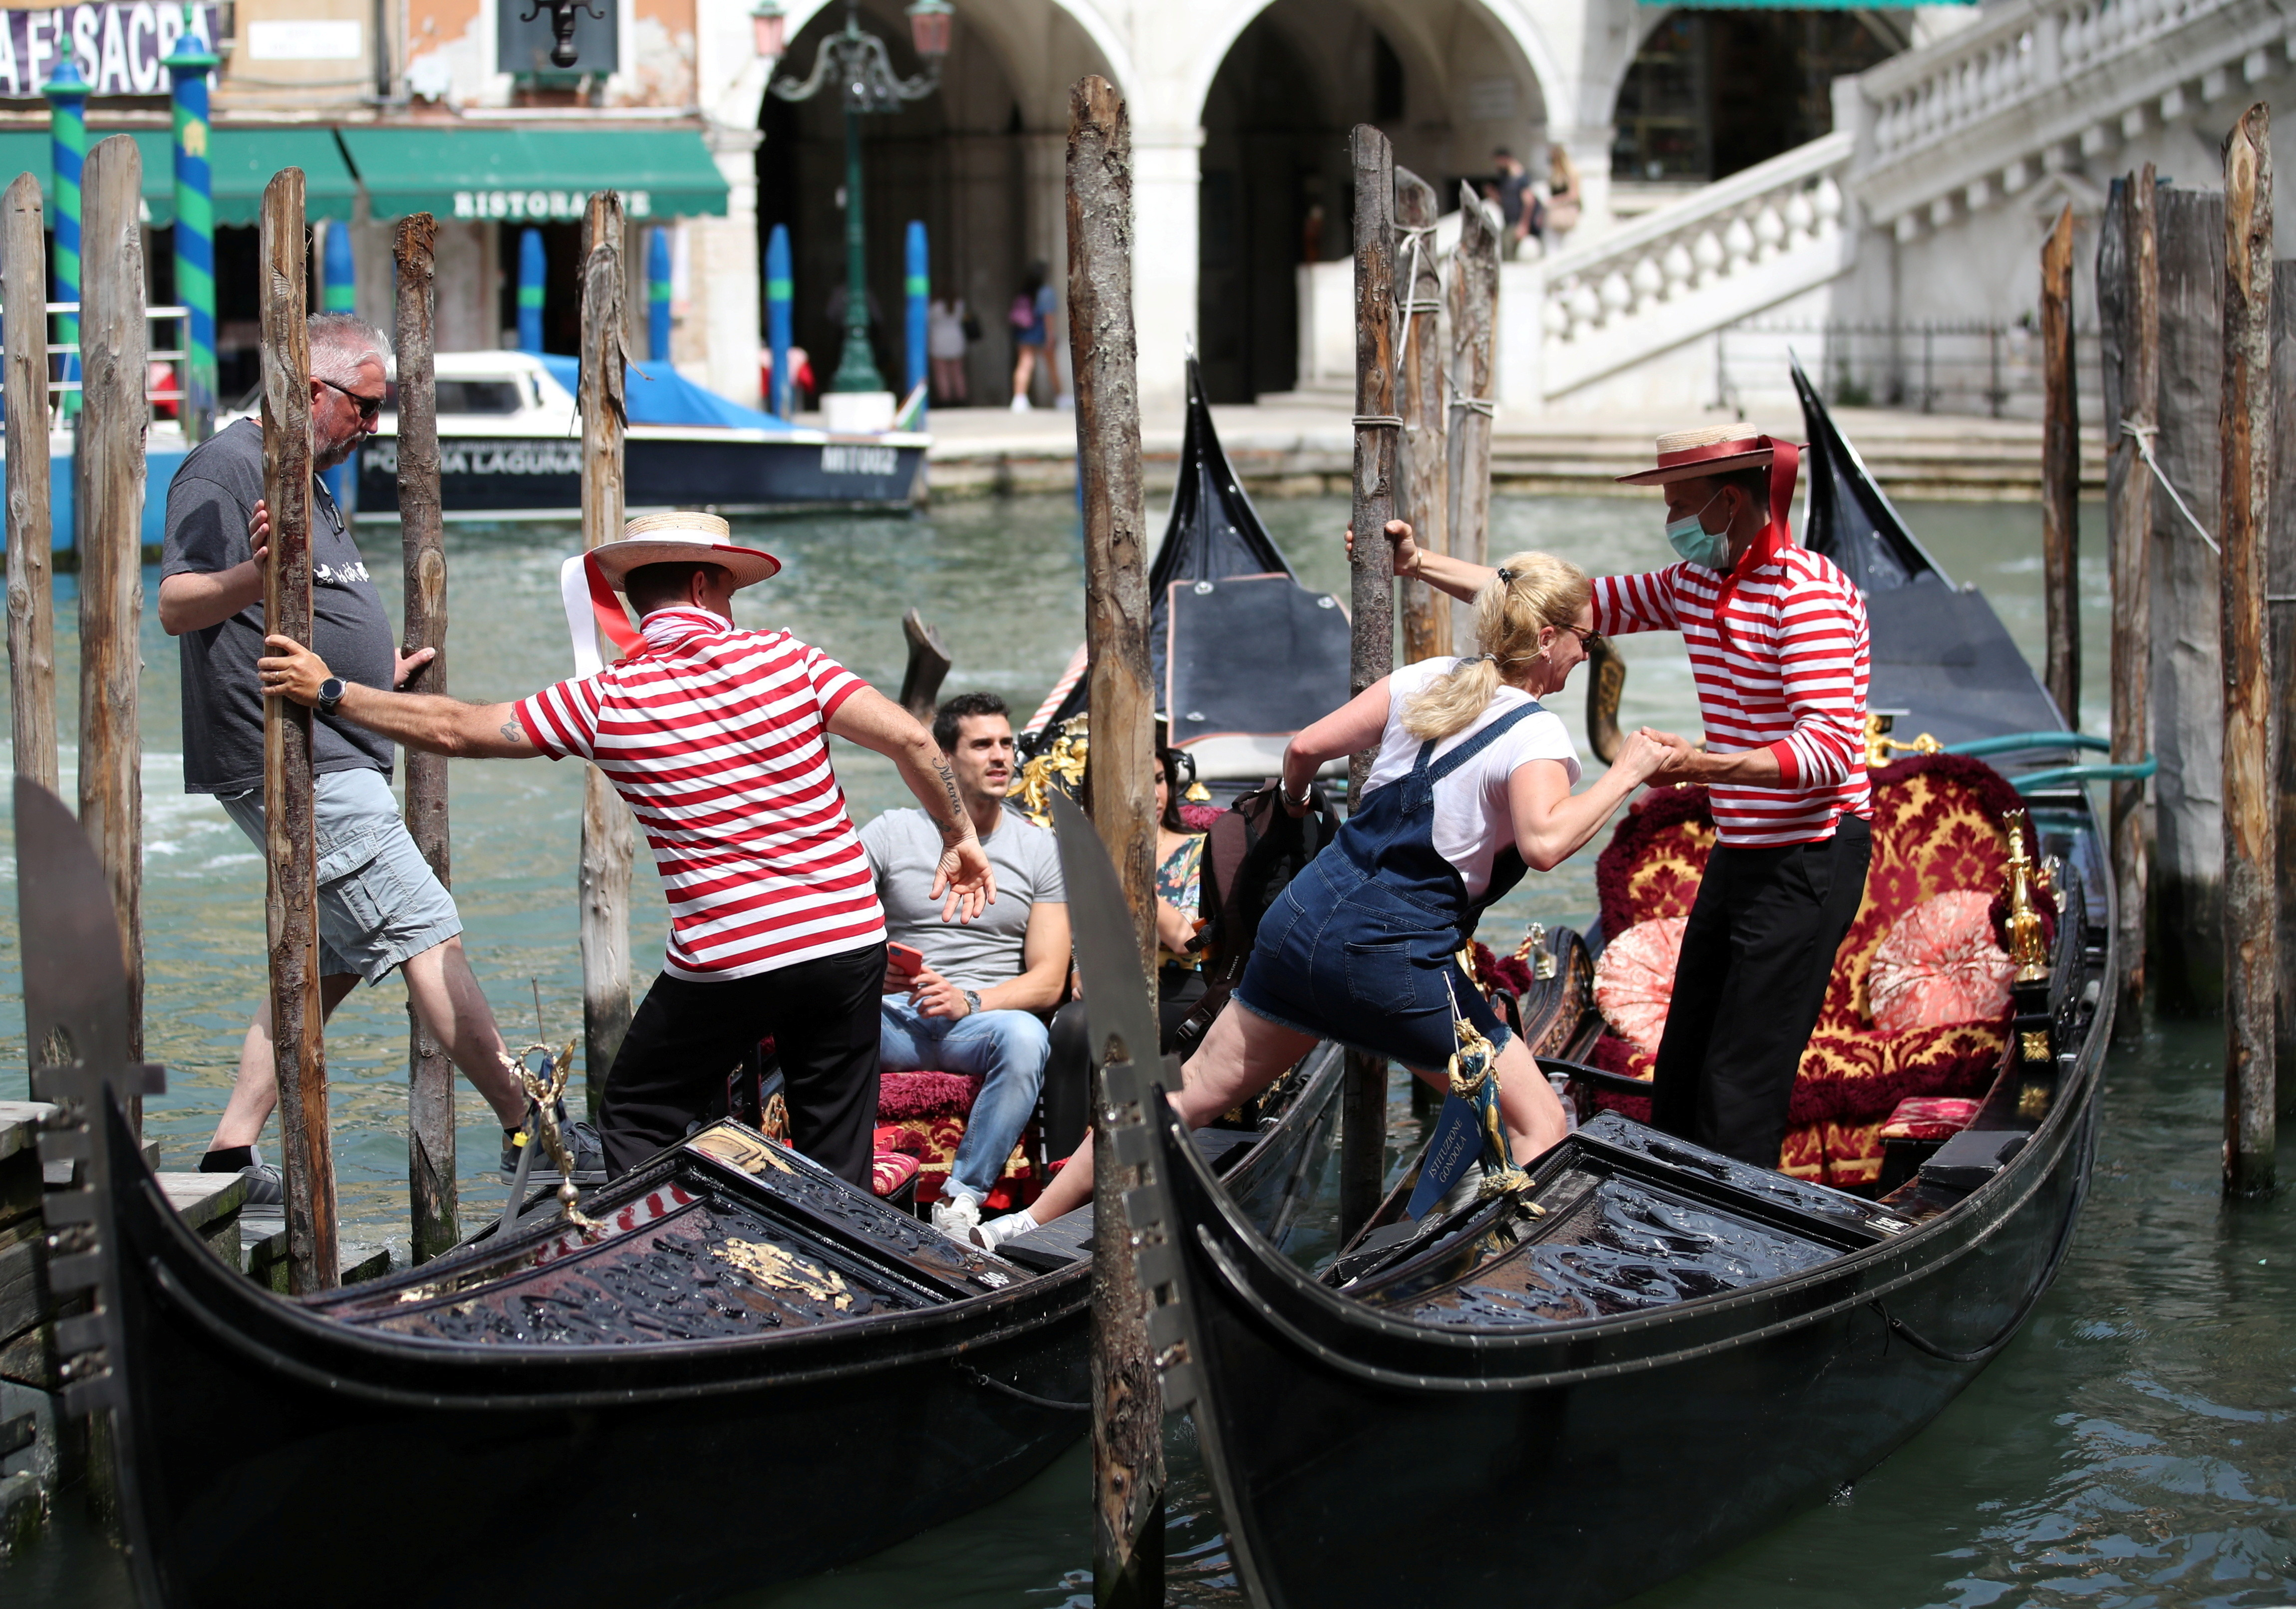 """Gondoliers help tourists to get on the gondolas, as the region of Veneto becomes a """"white zone"""", following a relaxation of COVID-19 restrictions with only masks and social distancing required, in Venice, Italy, June 7, 2021. REUTERS/Yara Nardi     TPX IMAGES OF THE DAY - RC2MVN9XRHN1"""